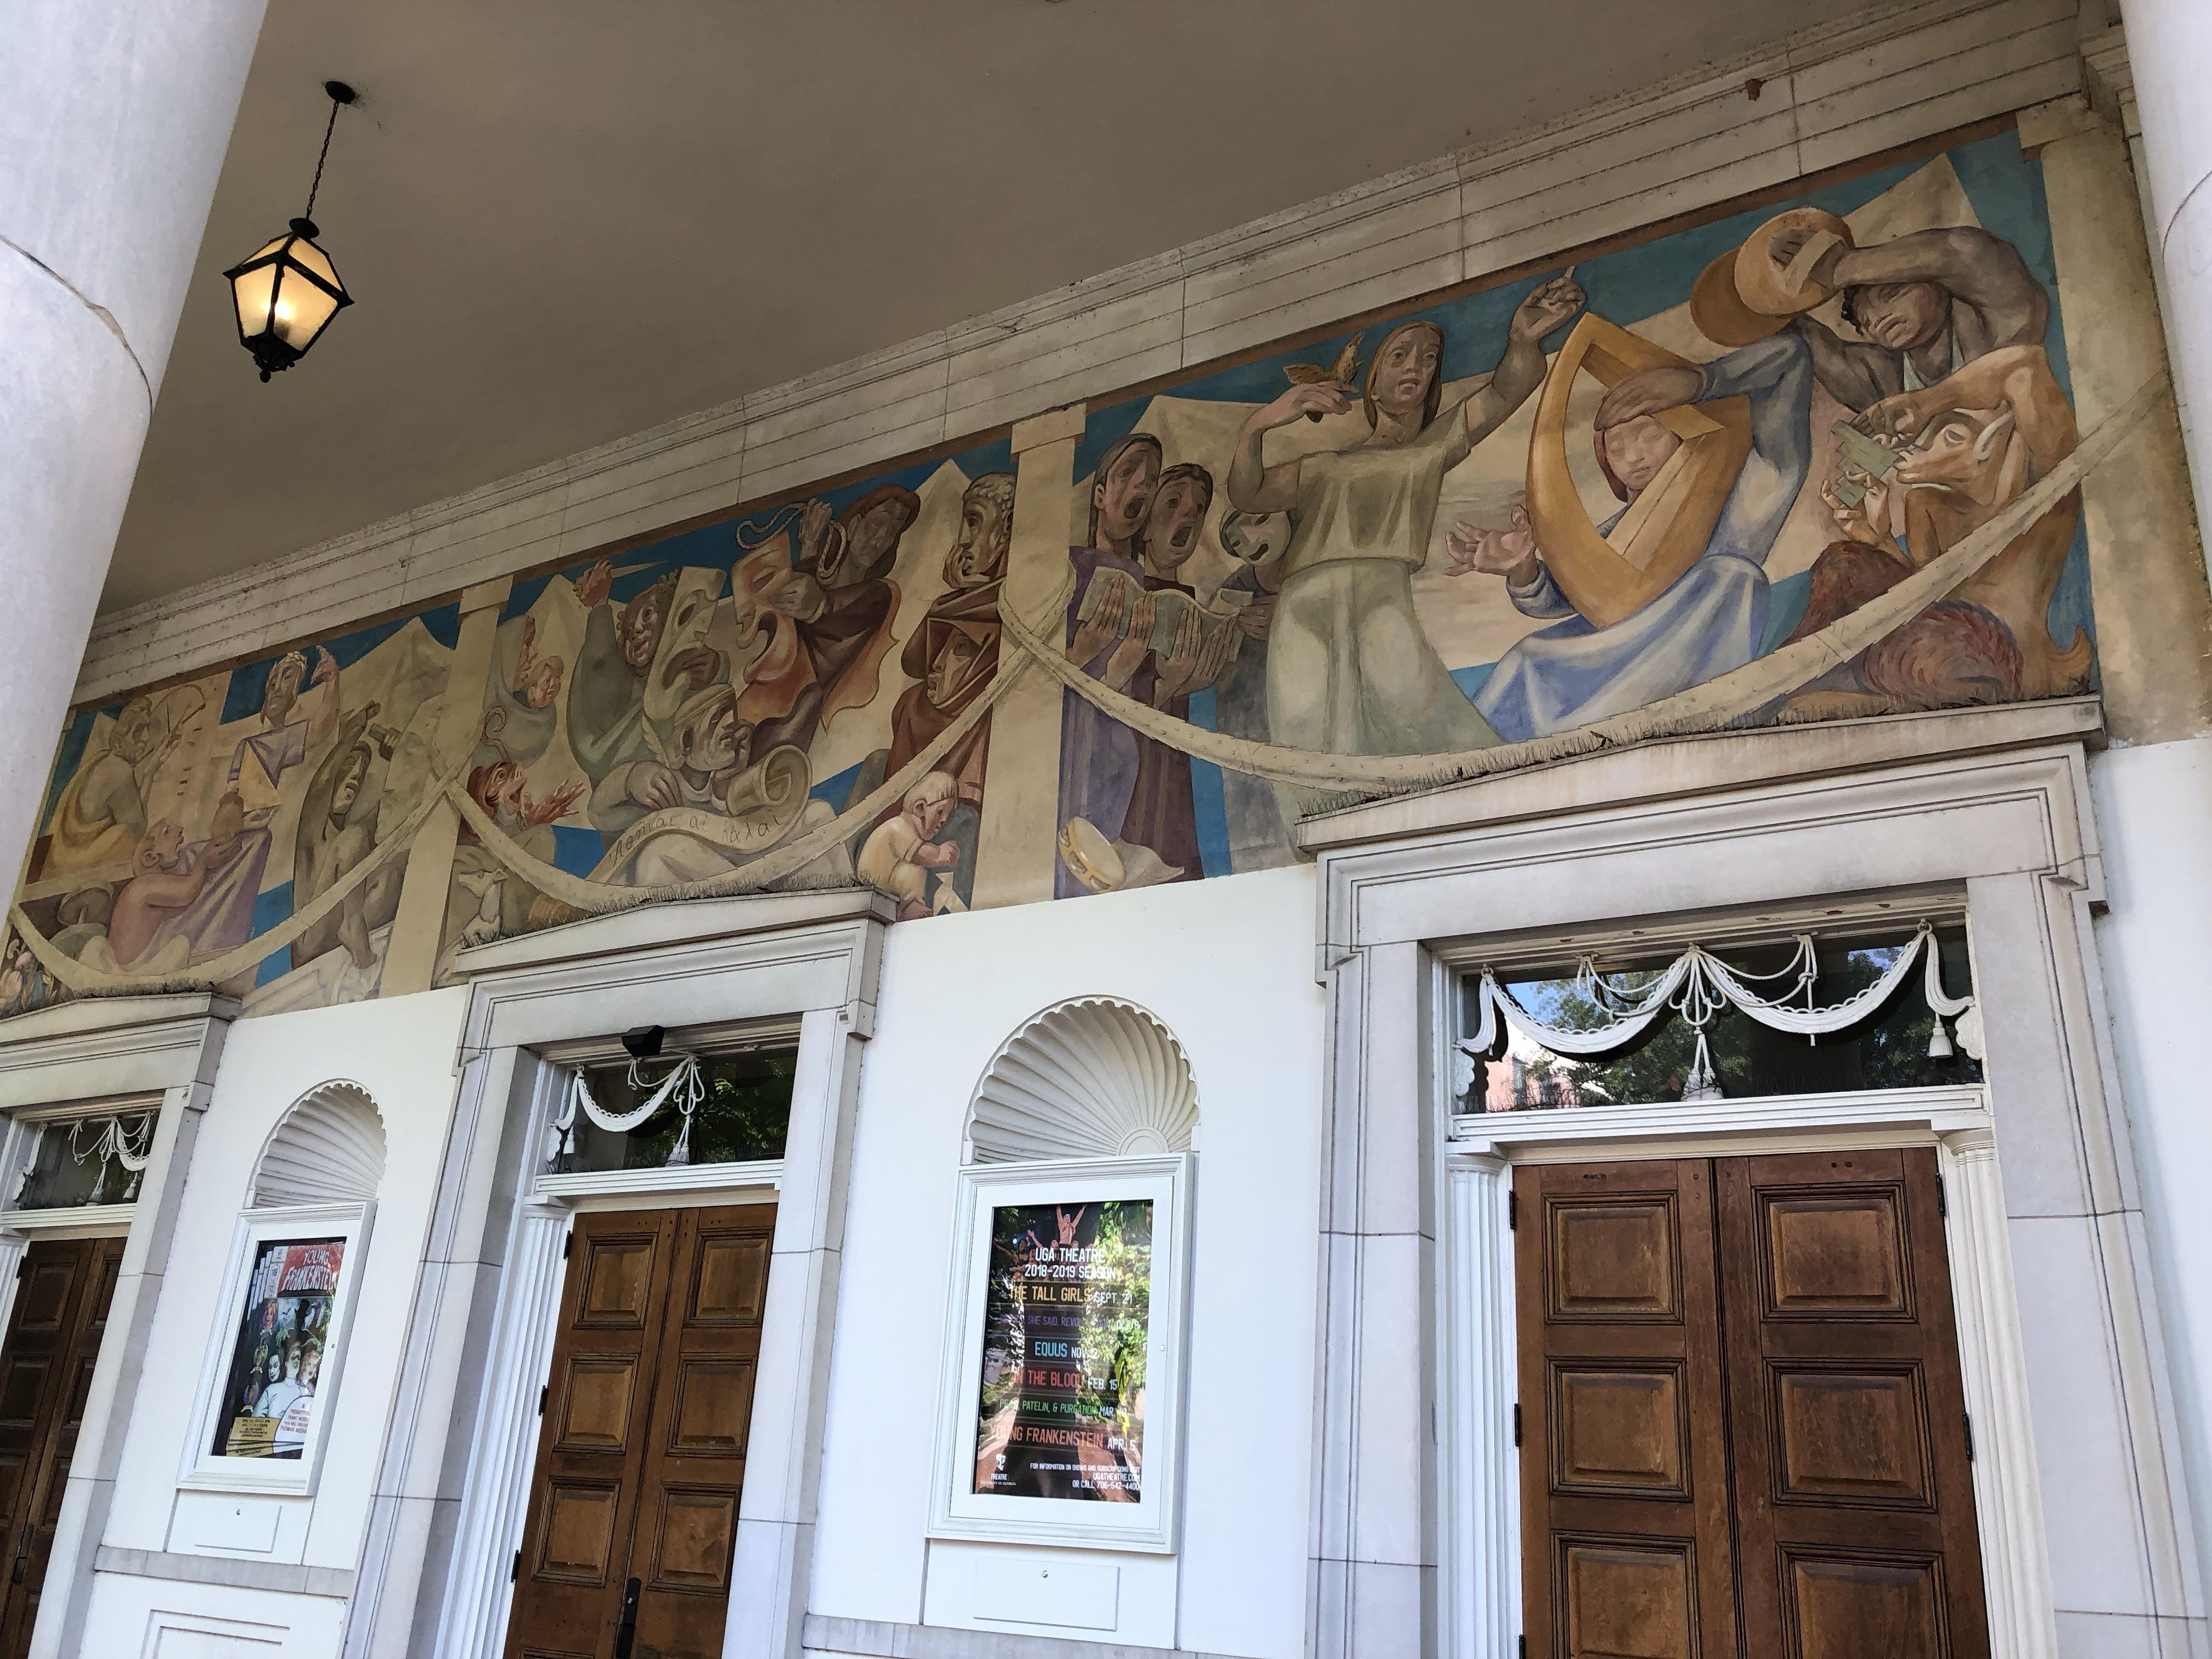 Grand mural adorning the building's main entrance (looking westward).